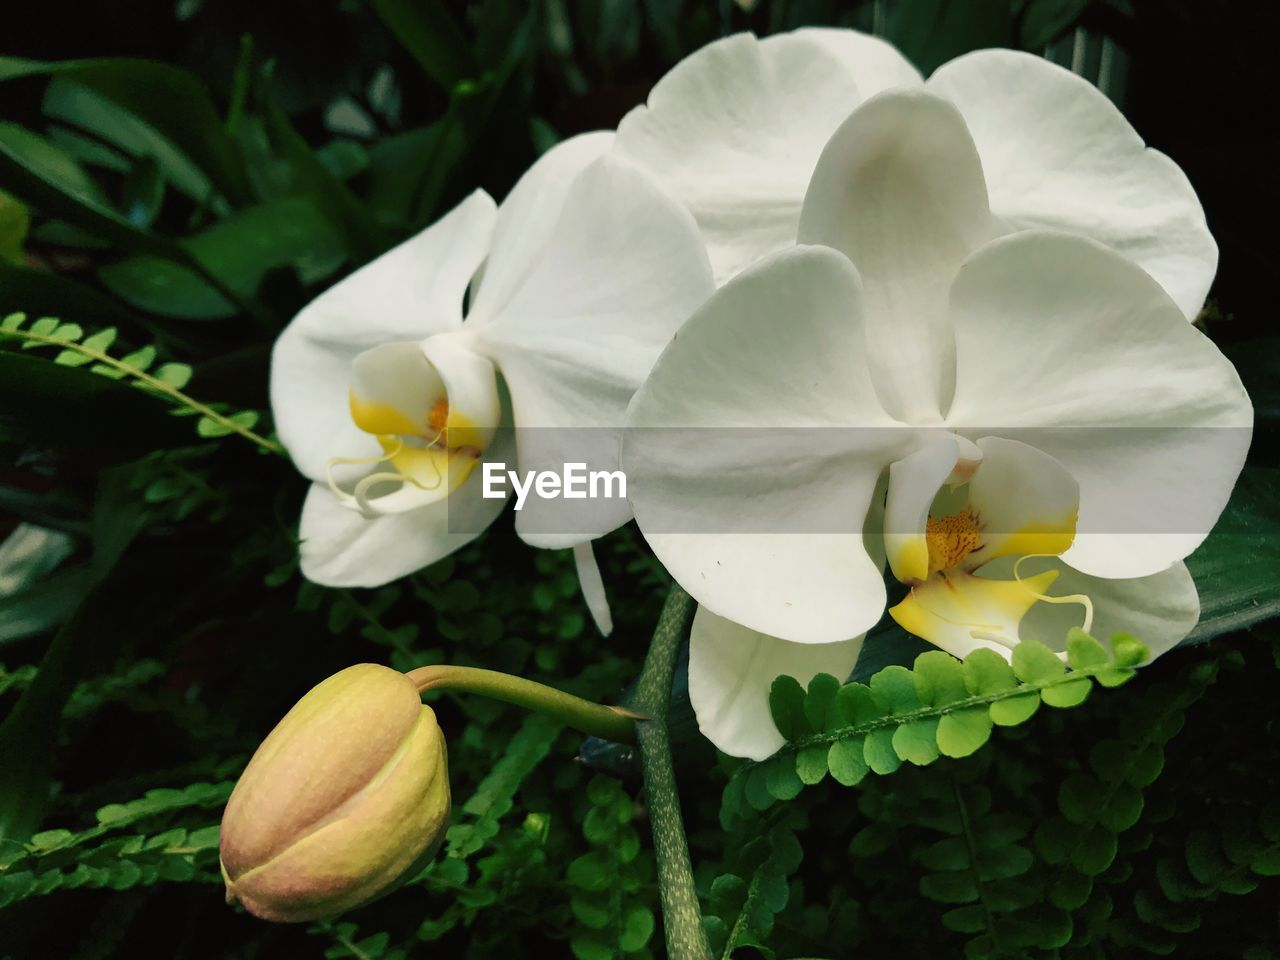 flower, petal, growth, beauty in nature, flower head, fragility, nature, freshness, plant, white color, blooming, no people, close-up, outdoors, leaf, day, frangipani